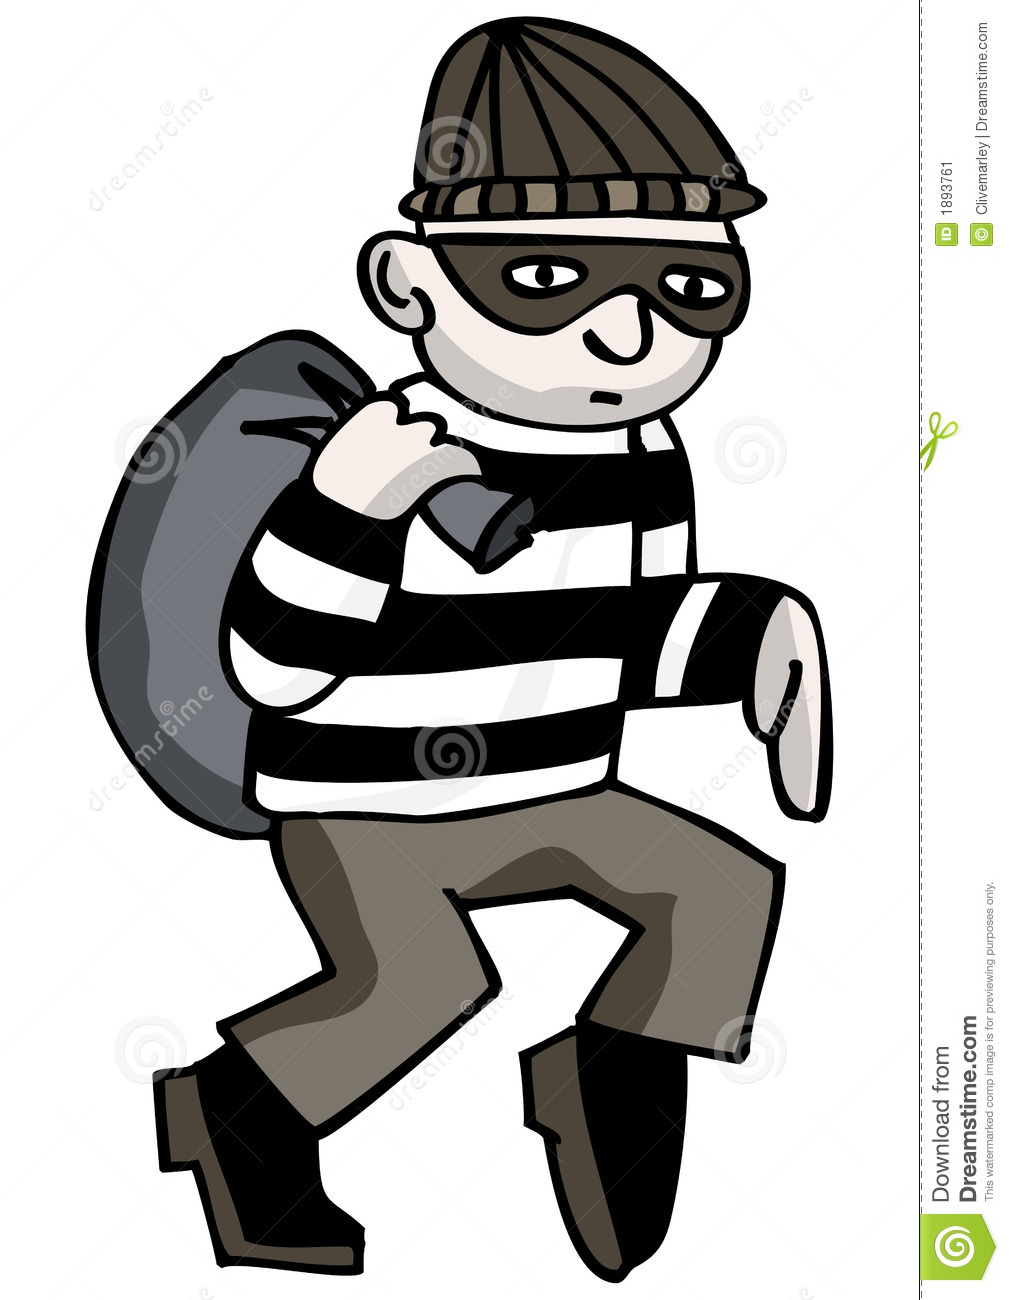 Robber clipart 7 » Clipart Station.